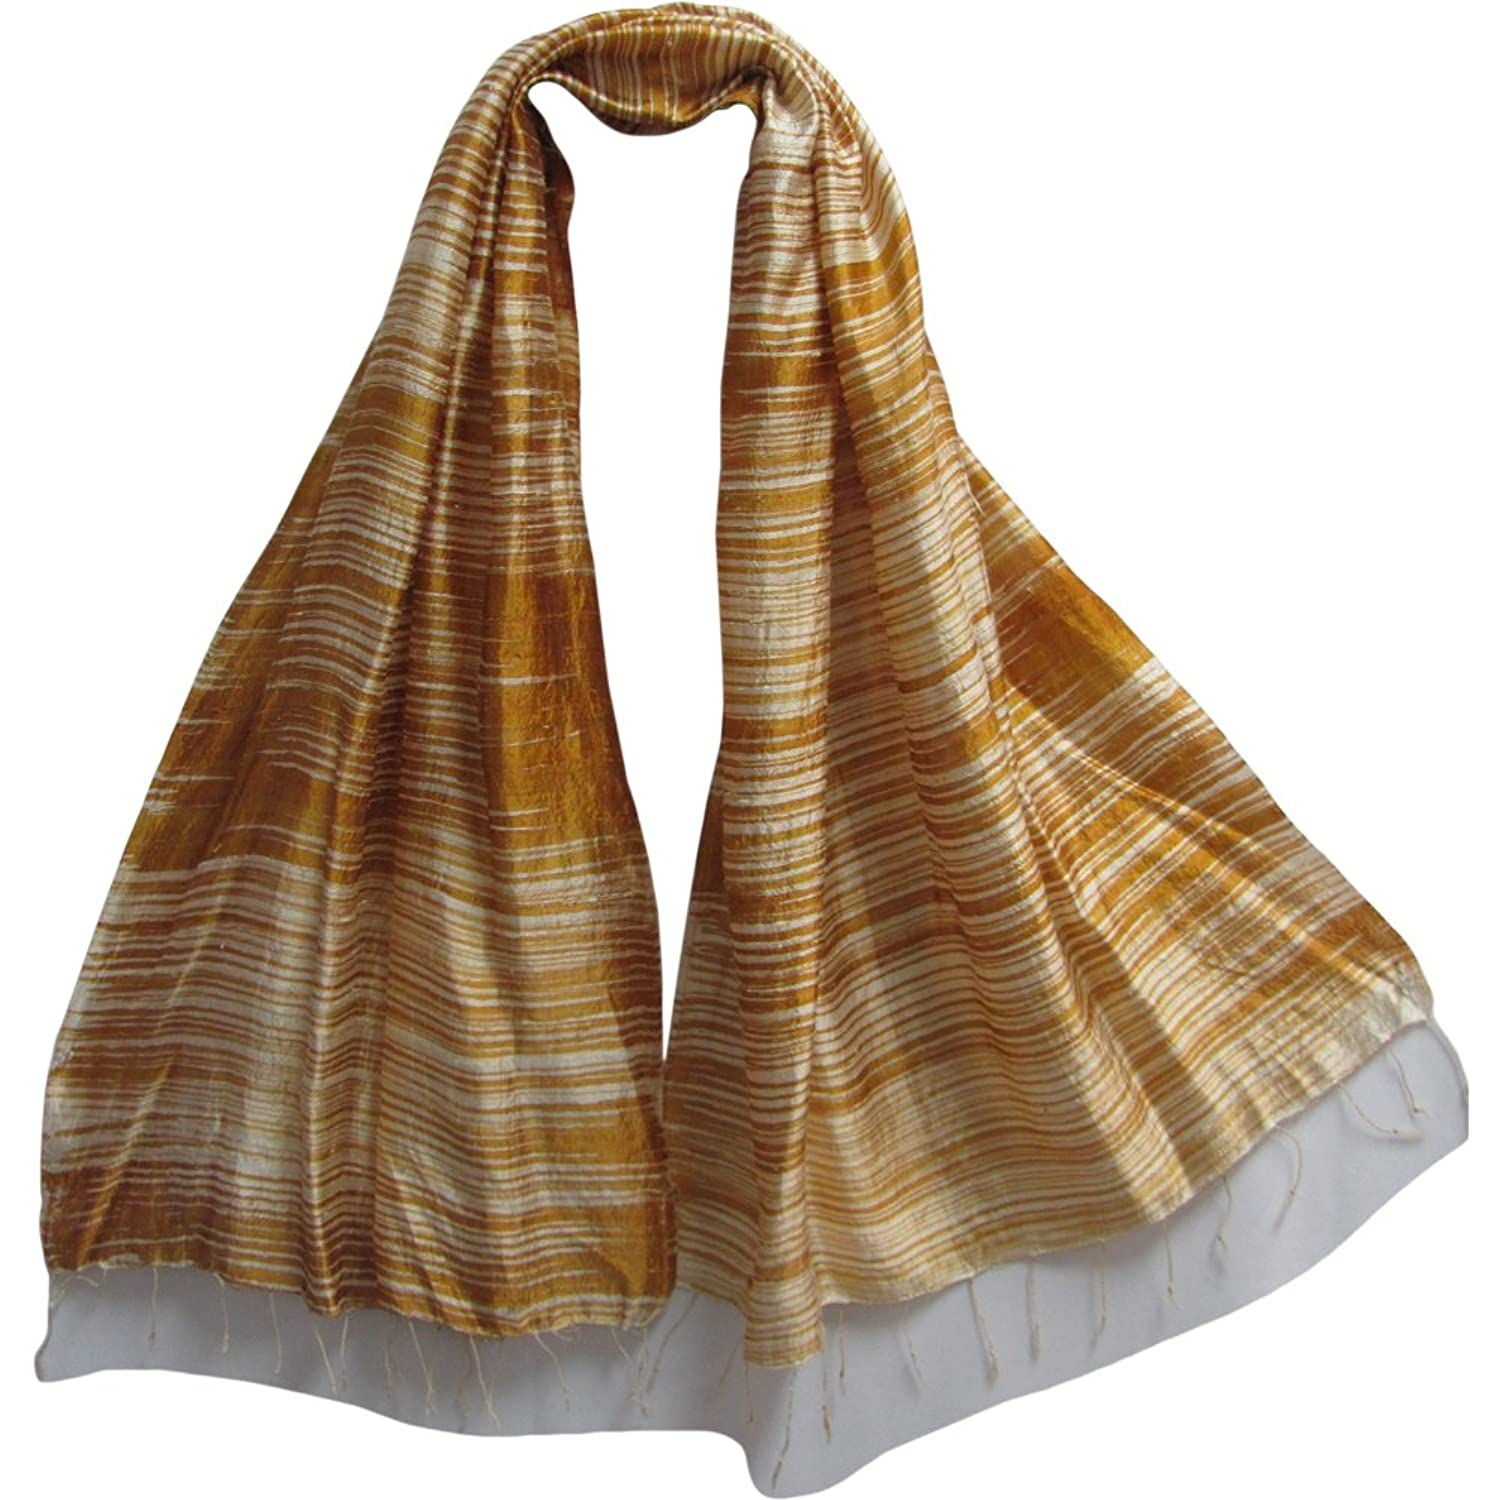 "Indian Striped Gold & Beige Print Long Fringed Raw Silk Scarf (28"" x 66"")"